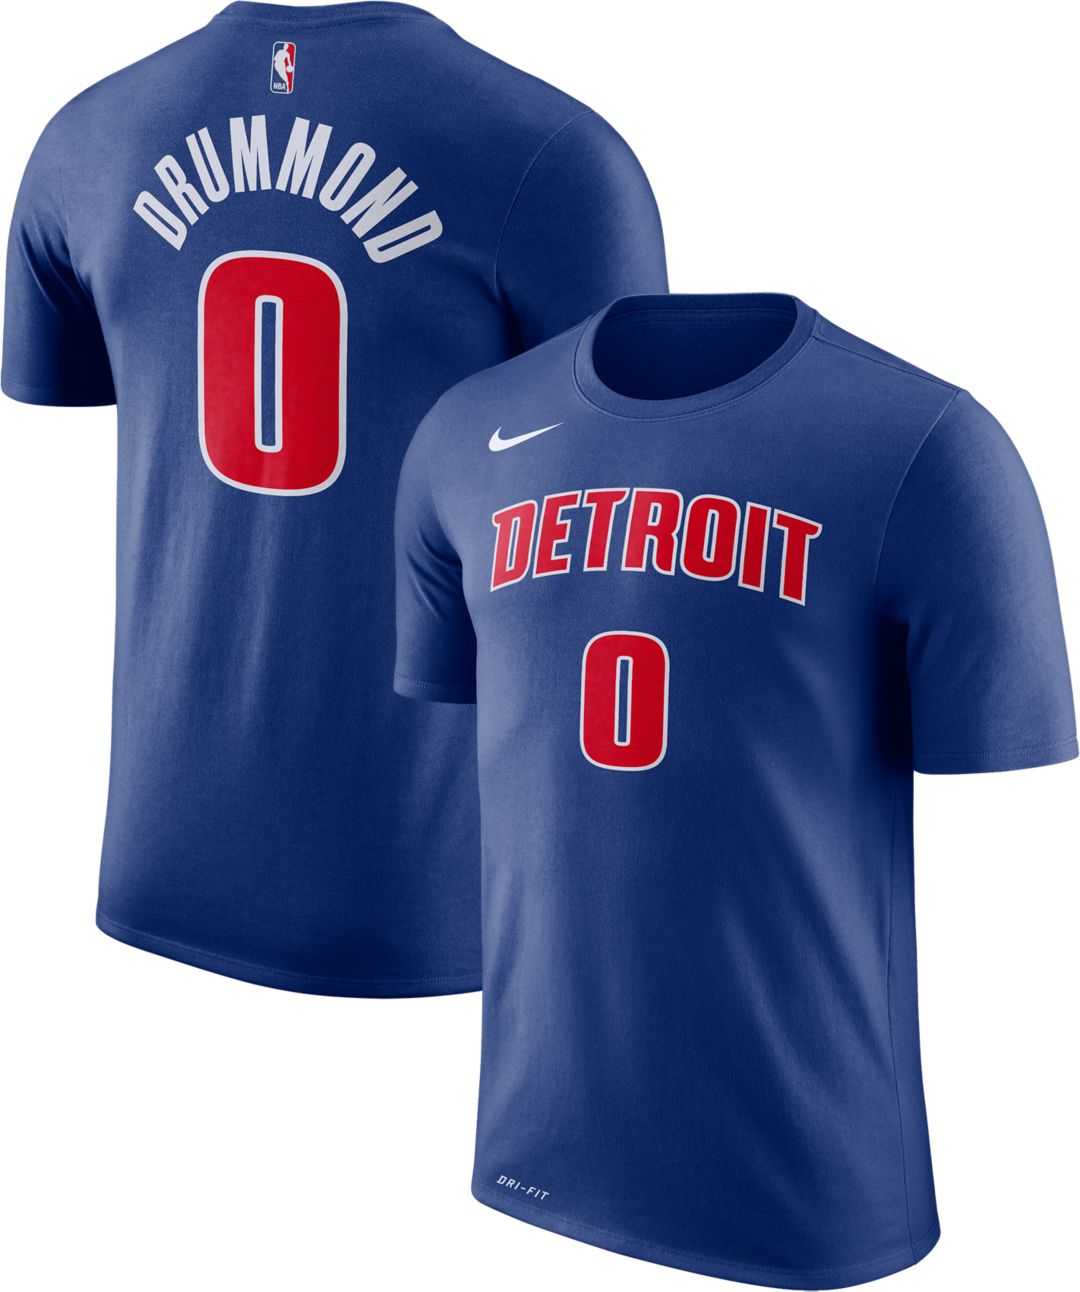 the latest 884b2 68b6f Nike Youth Detroit Pistons Andre Drummond #0 Dri-FIT Royal T-Shirt